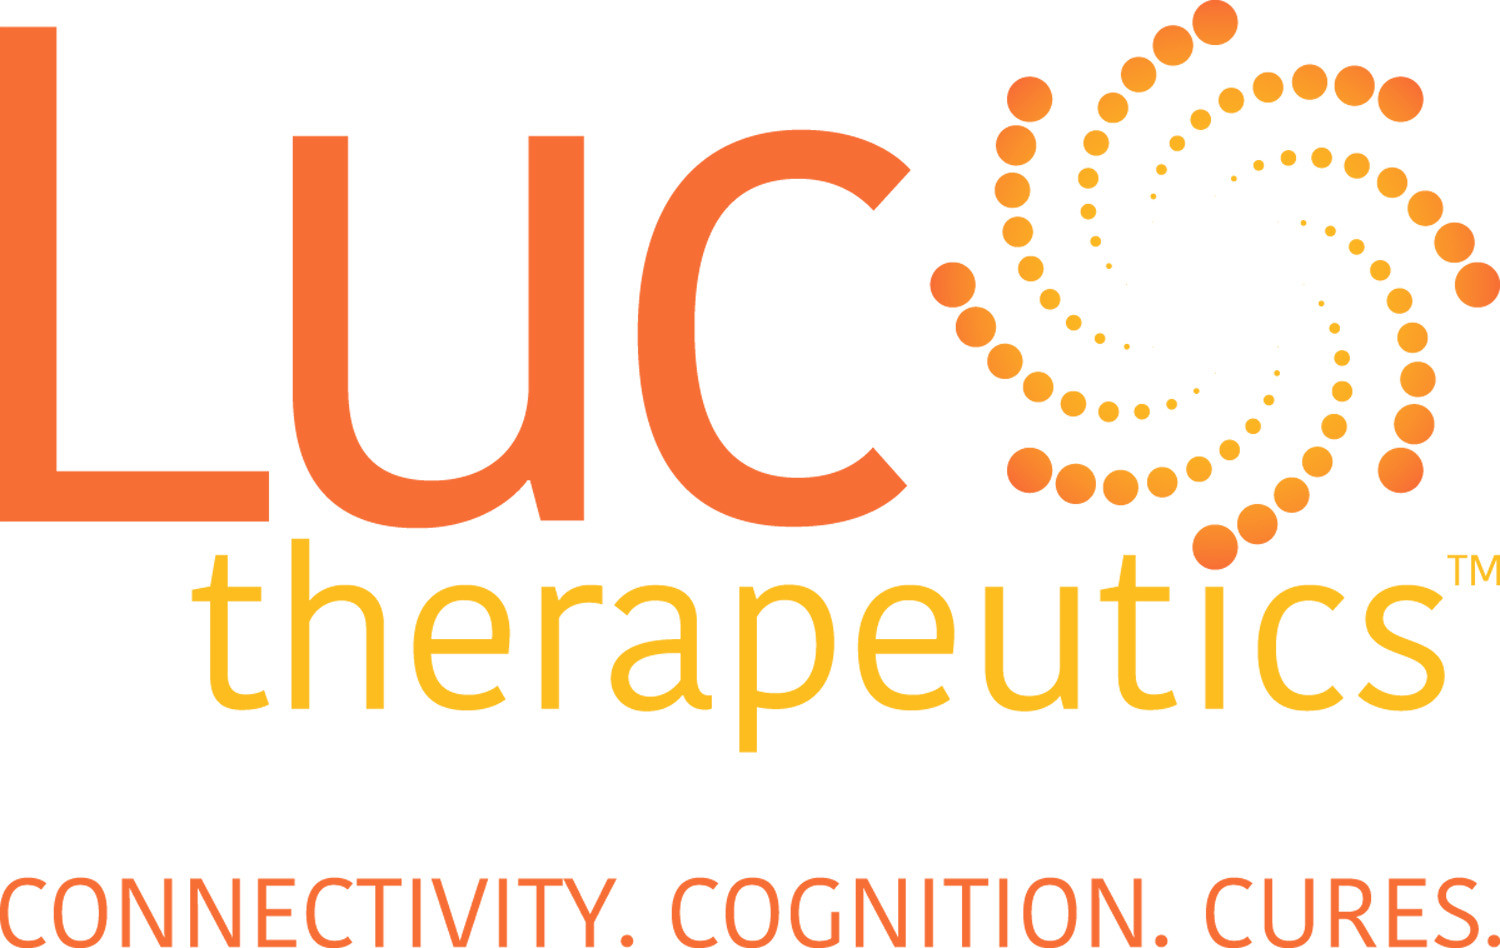 The newly named Luc Therapeutics, an early stage drug development firm that was begun in Providence, announced that it had signed a deal with Novartis for licensing and development of its new compound to create a fast-acting treatment for depression.